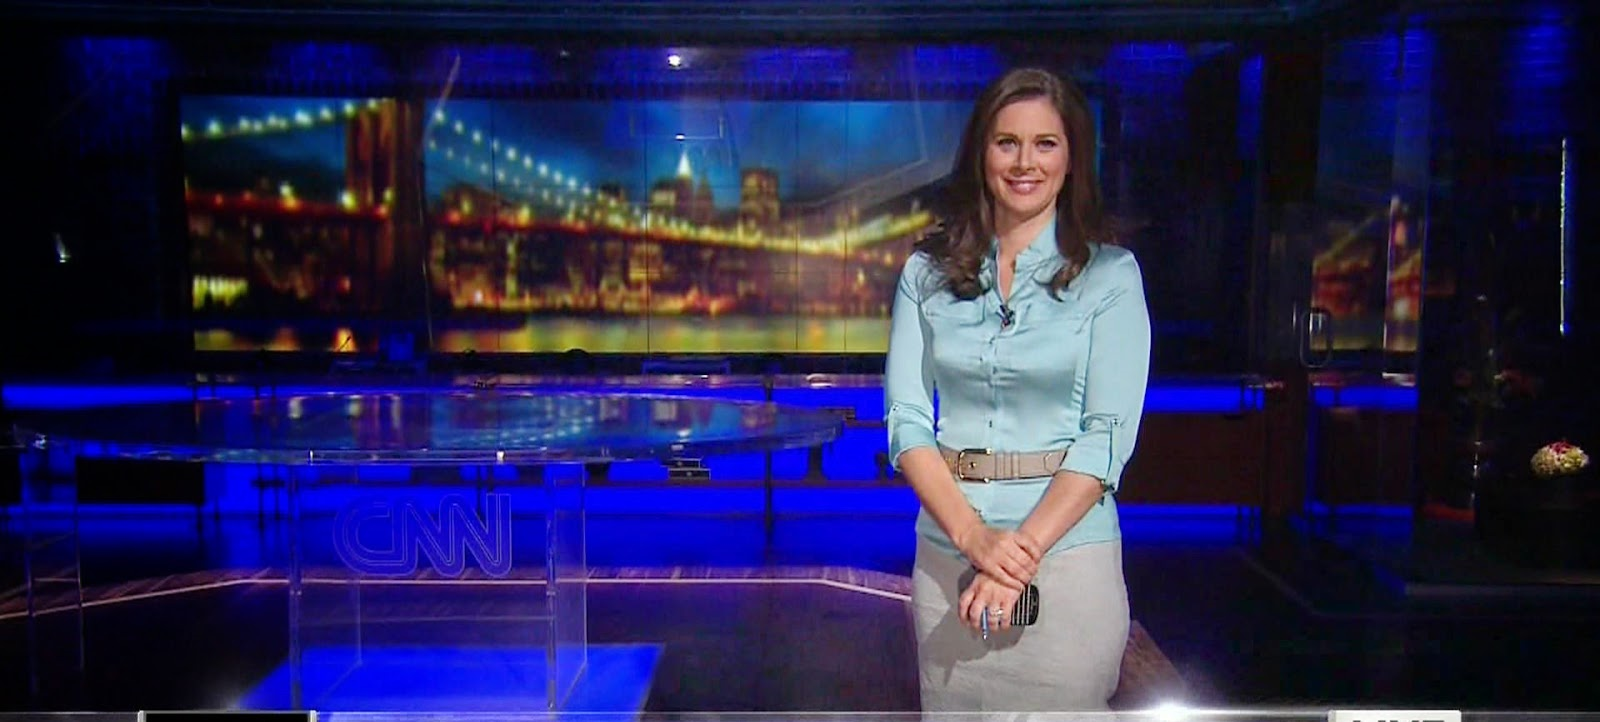 Erin Burnett Hot Bikini Pics, News Host Kissing Scene 9